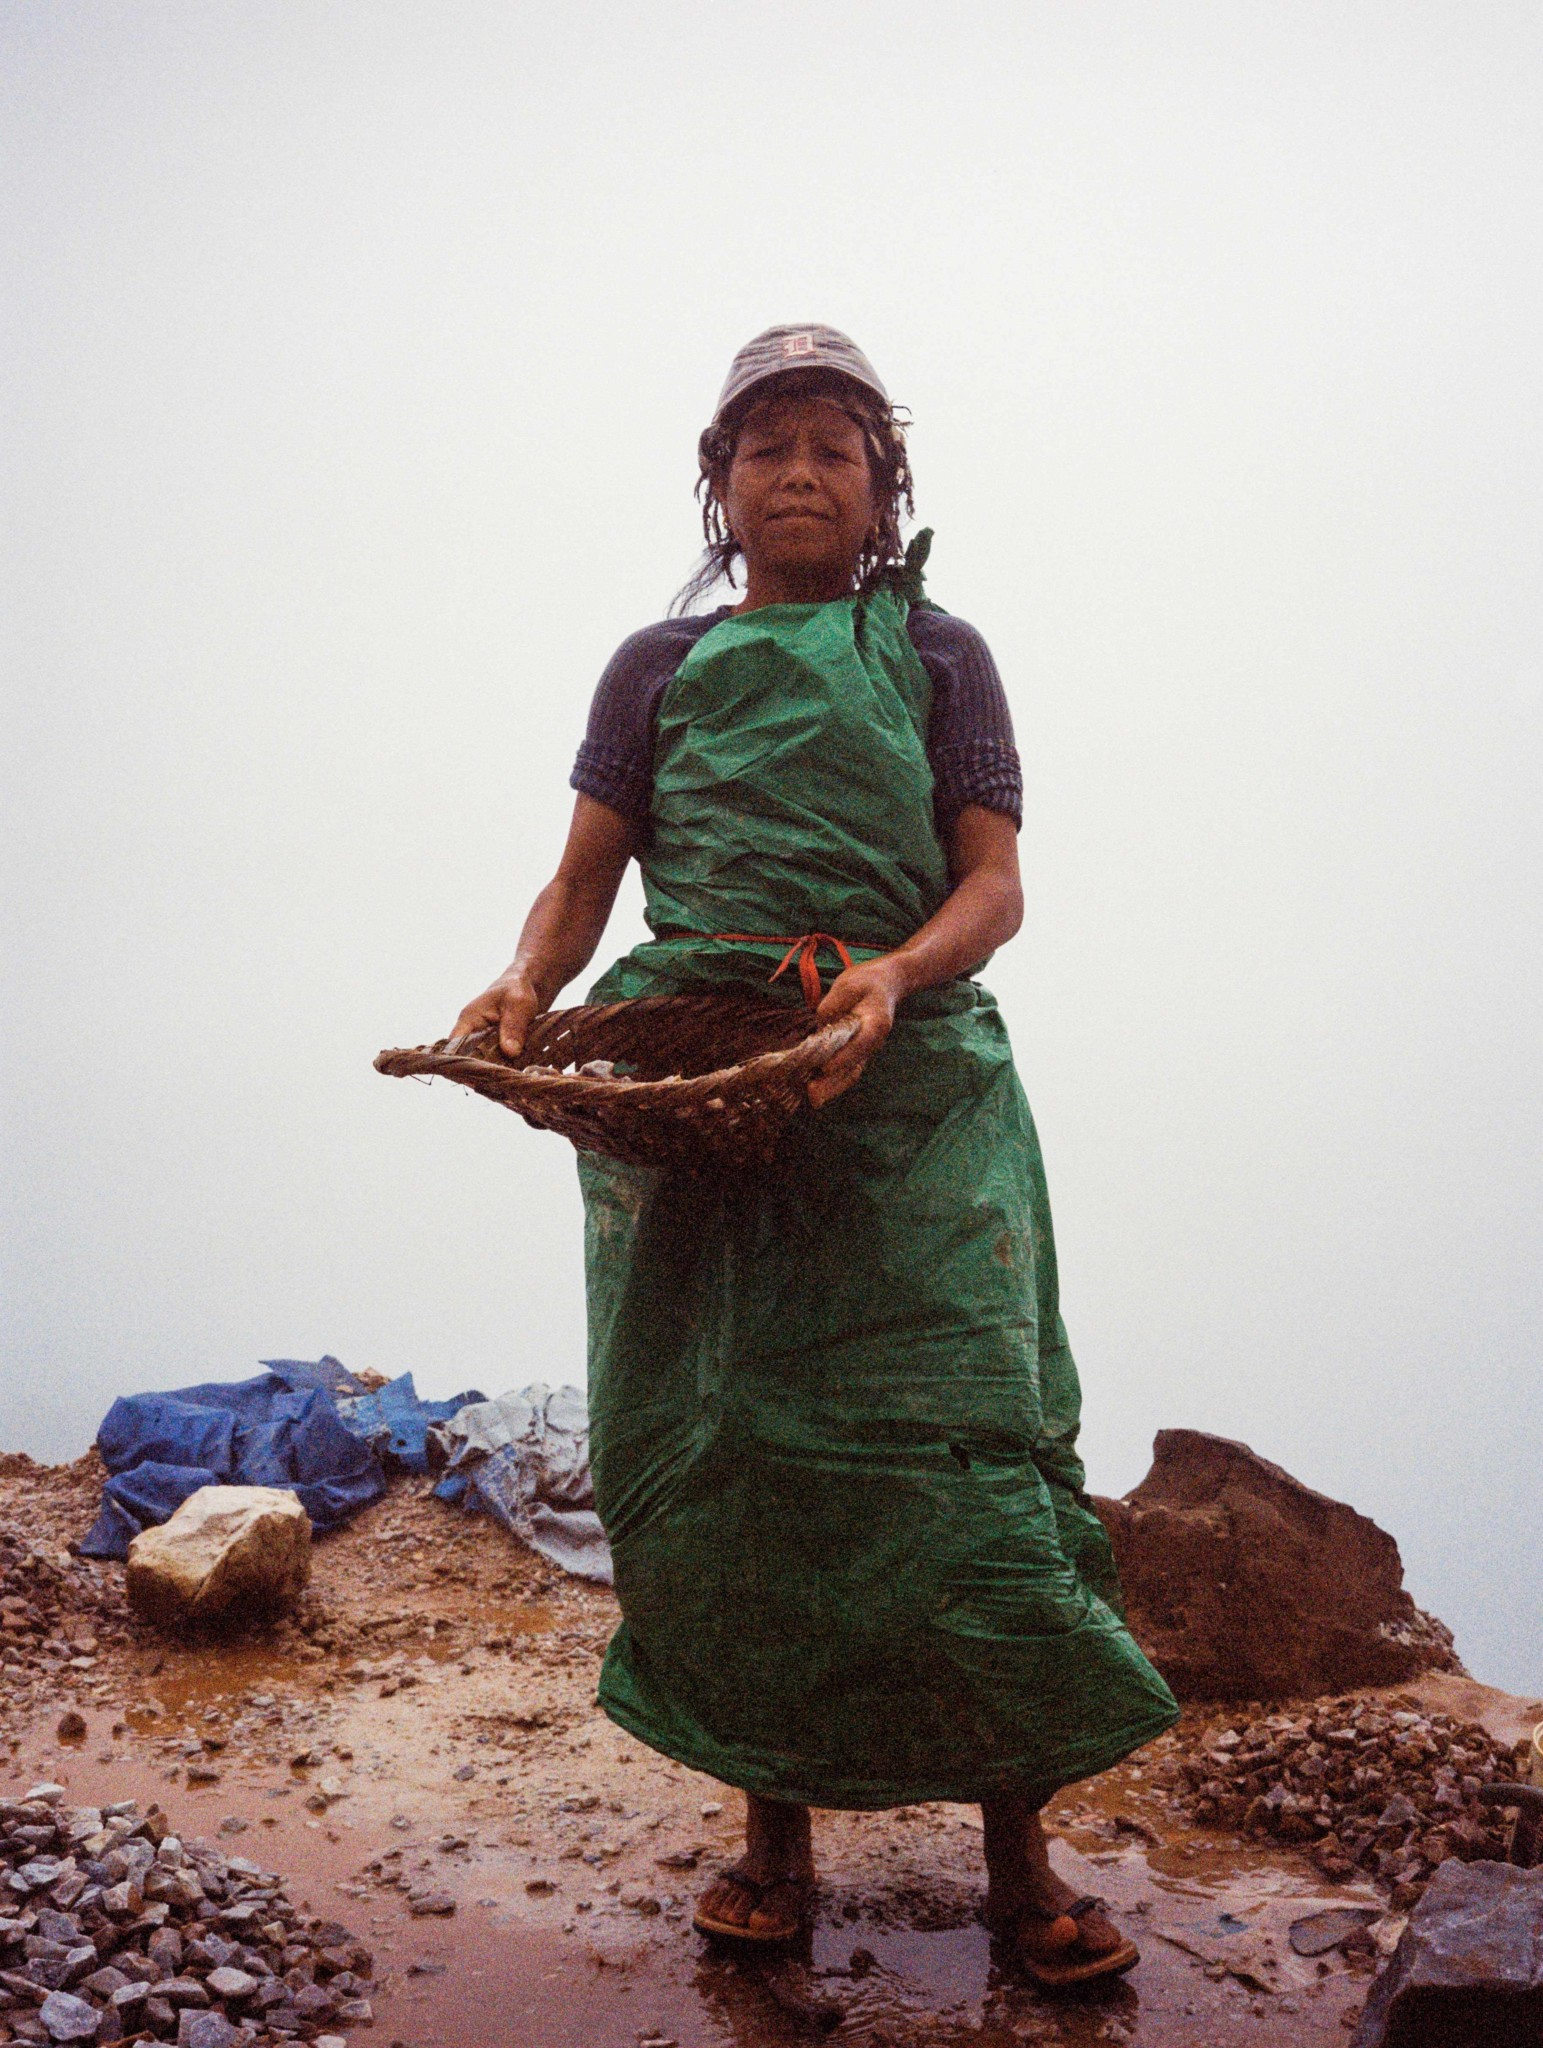 Meghalaya is one of the wettest places on the planet, and the 'nong shain maw' wear brightly coloured tarpaulins to protect themselves from the rain.